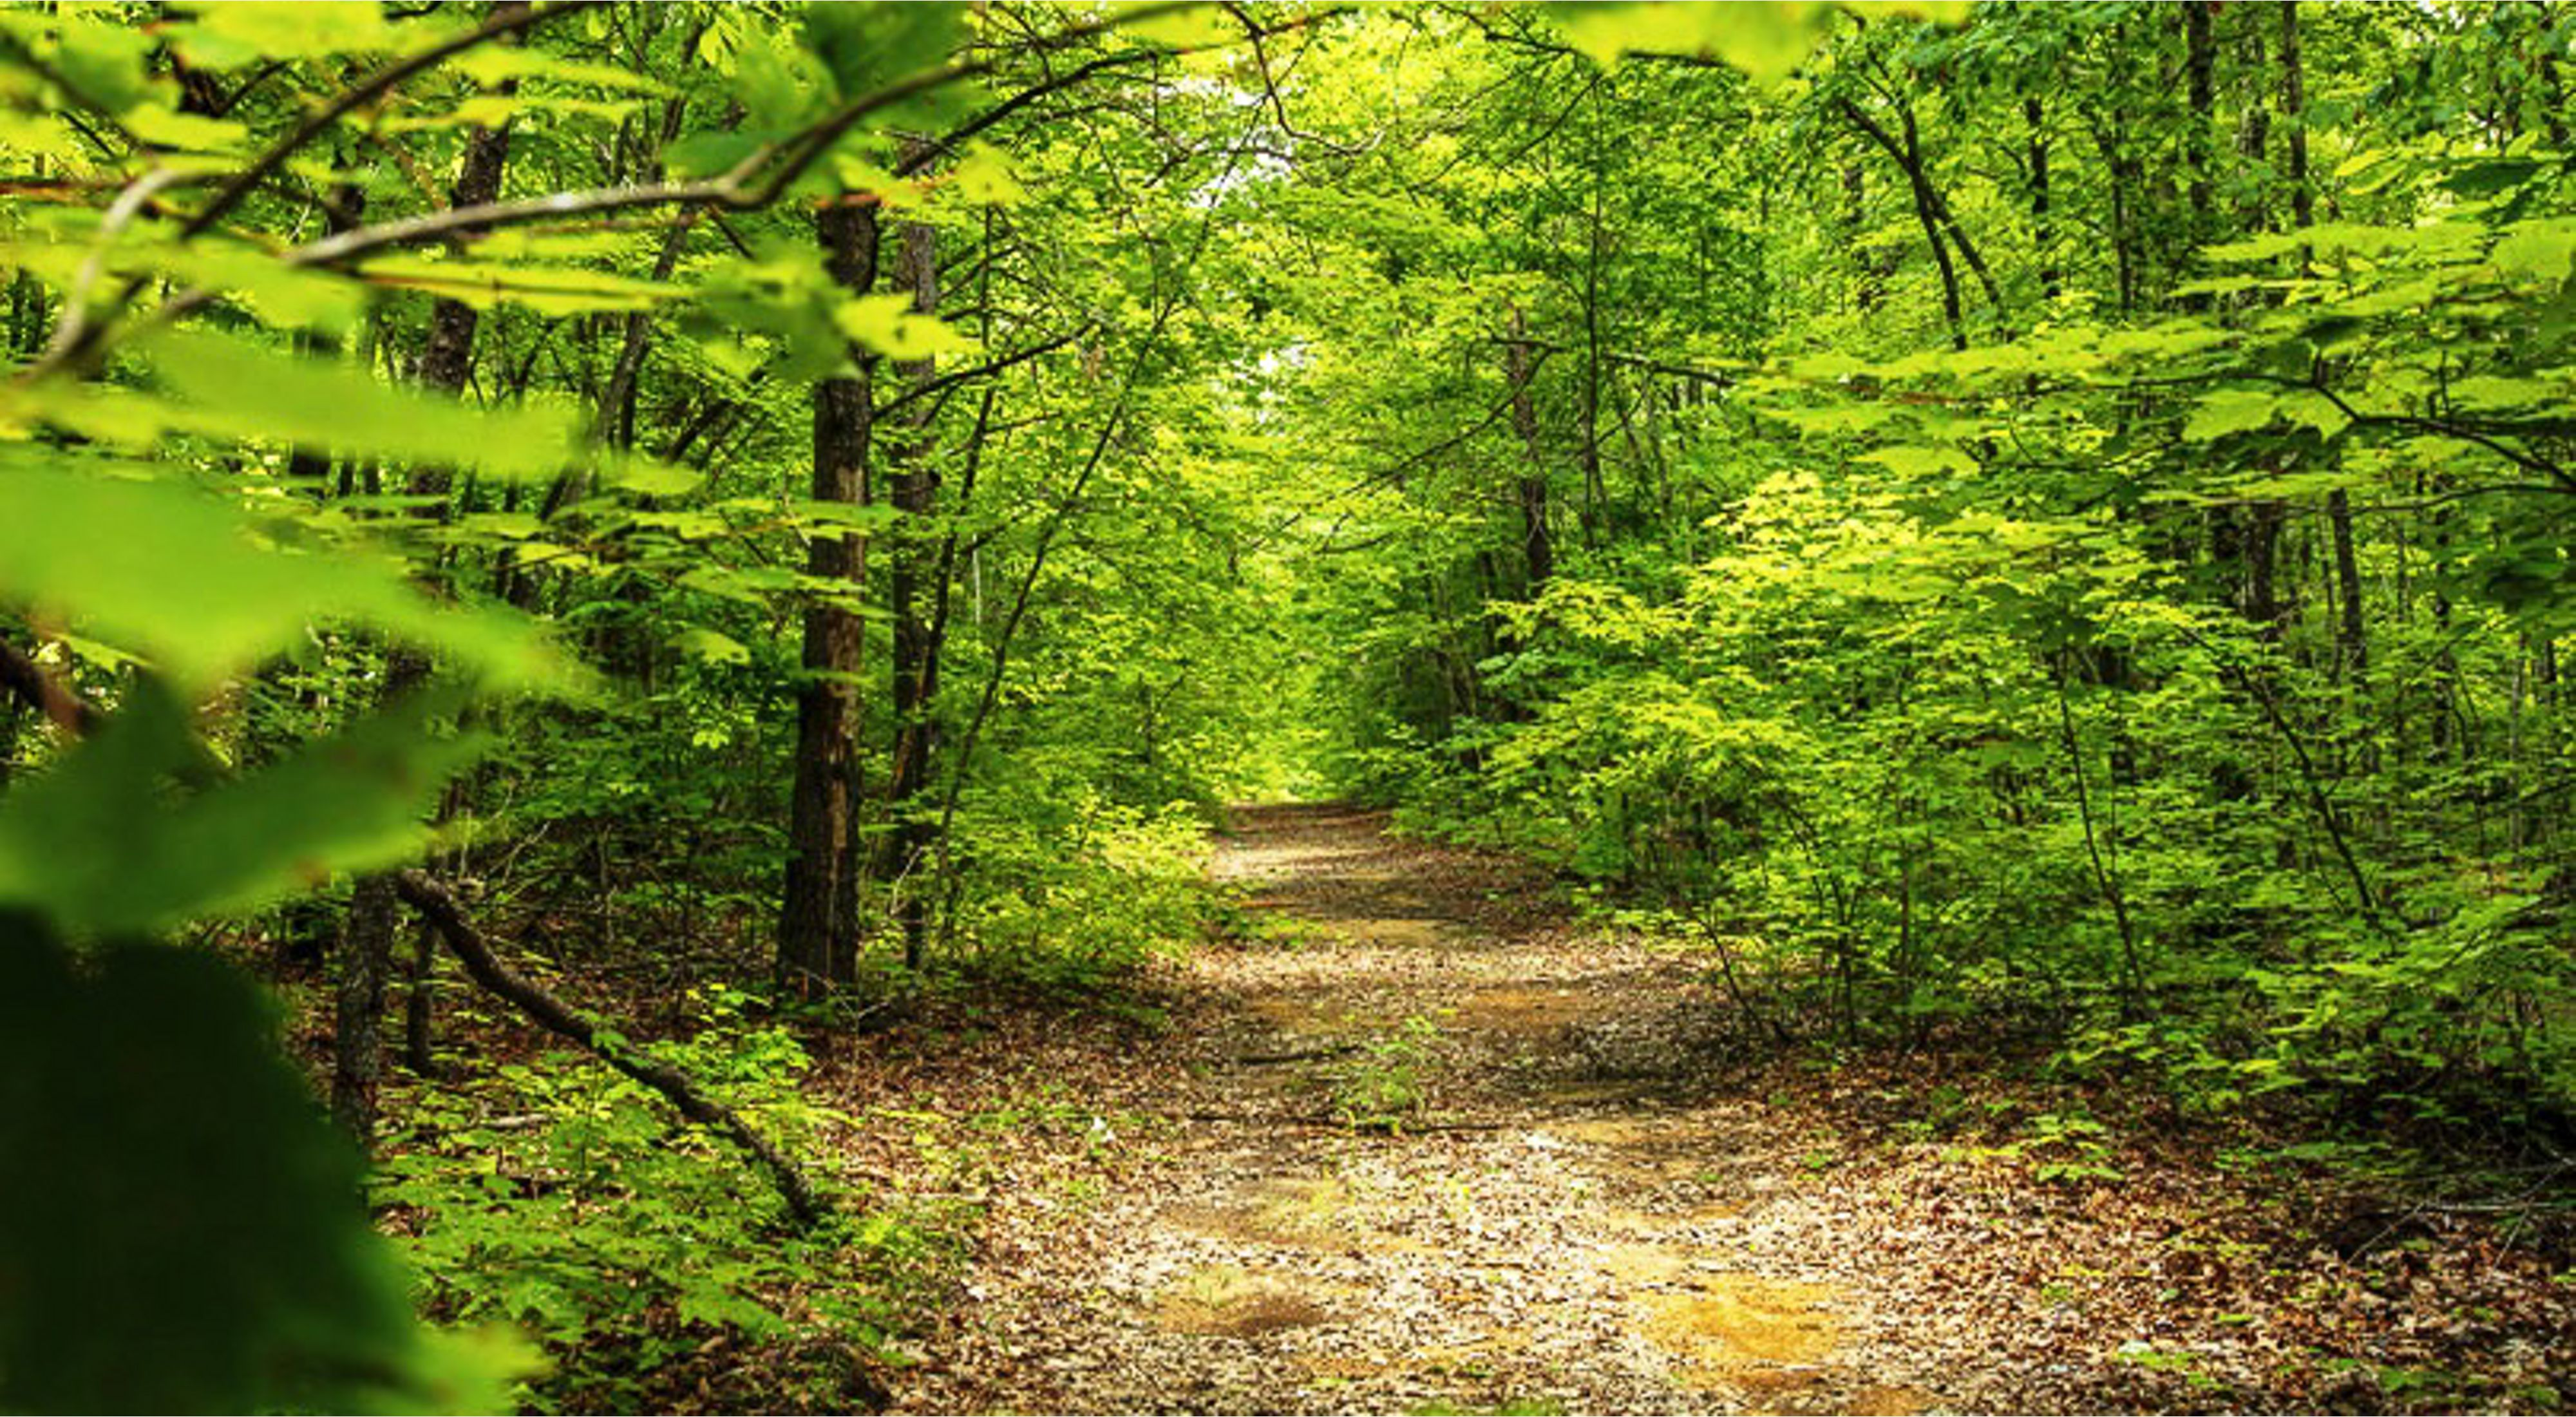 Green, leafy trees line a brown path through a forest.